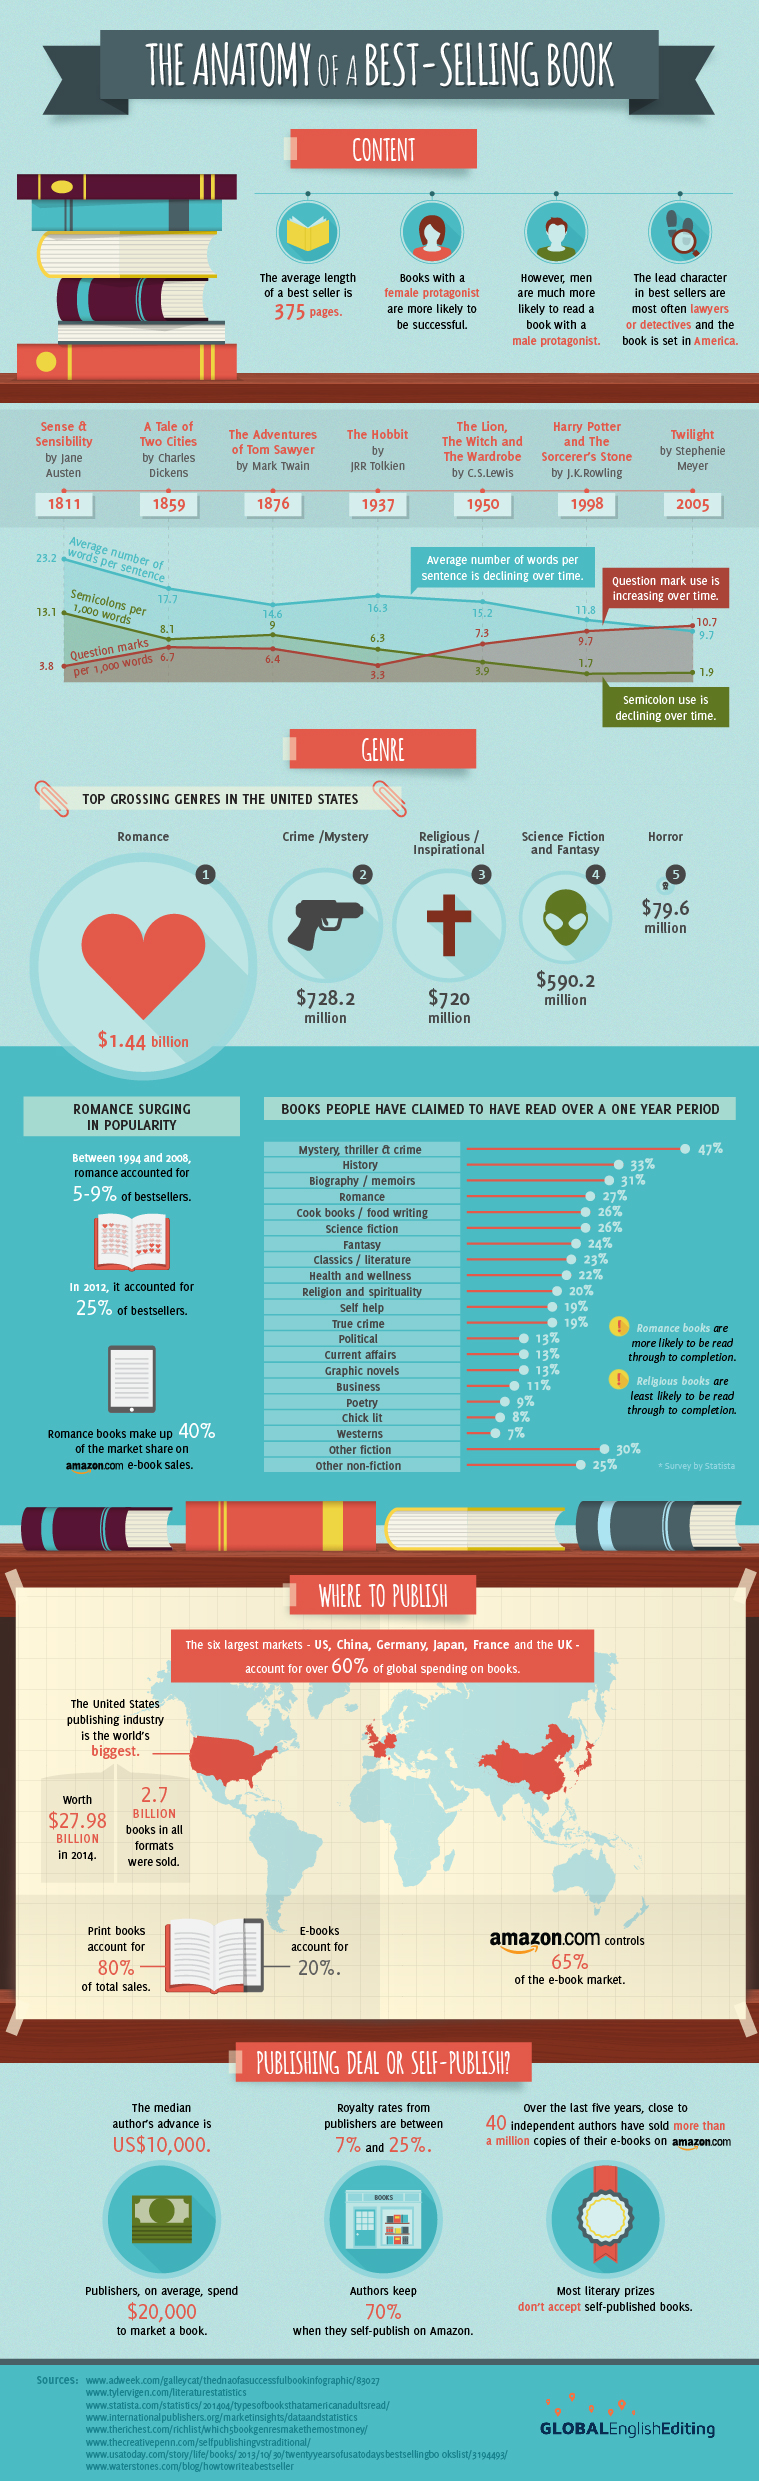 Best-selling Books Infographic